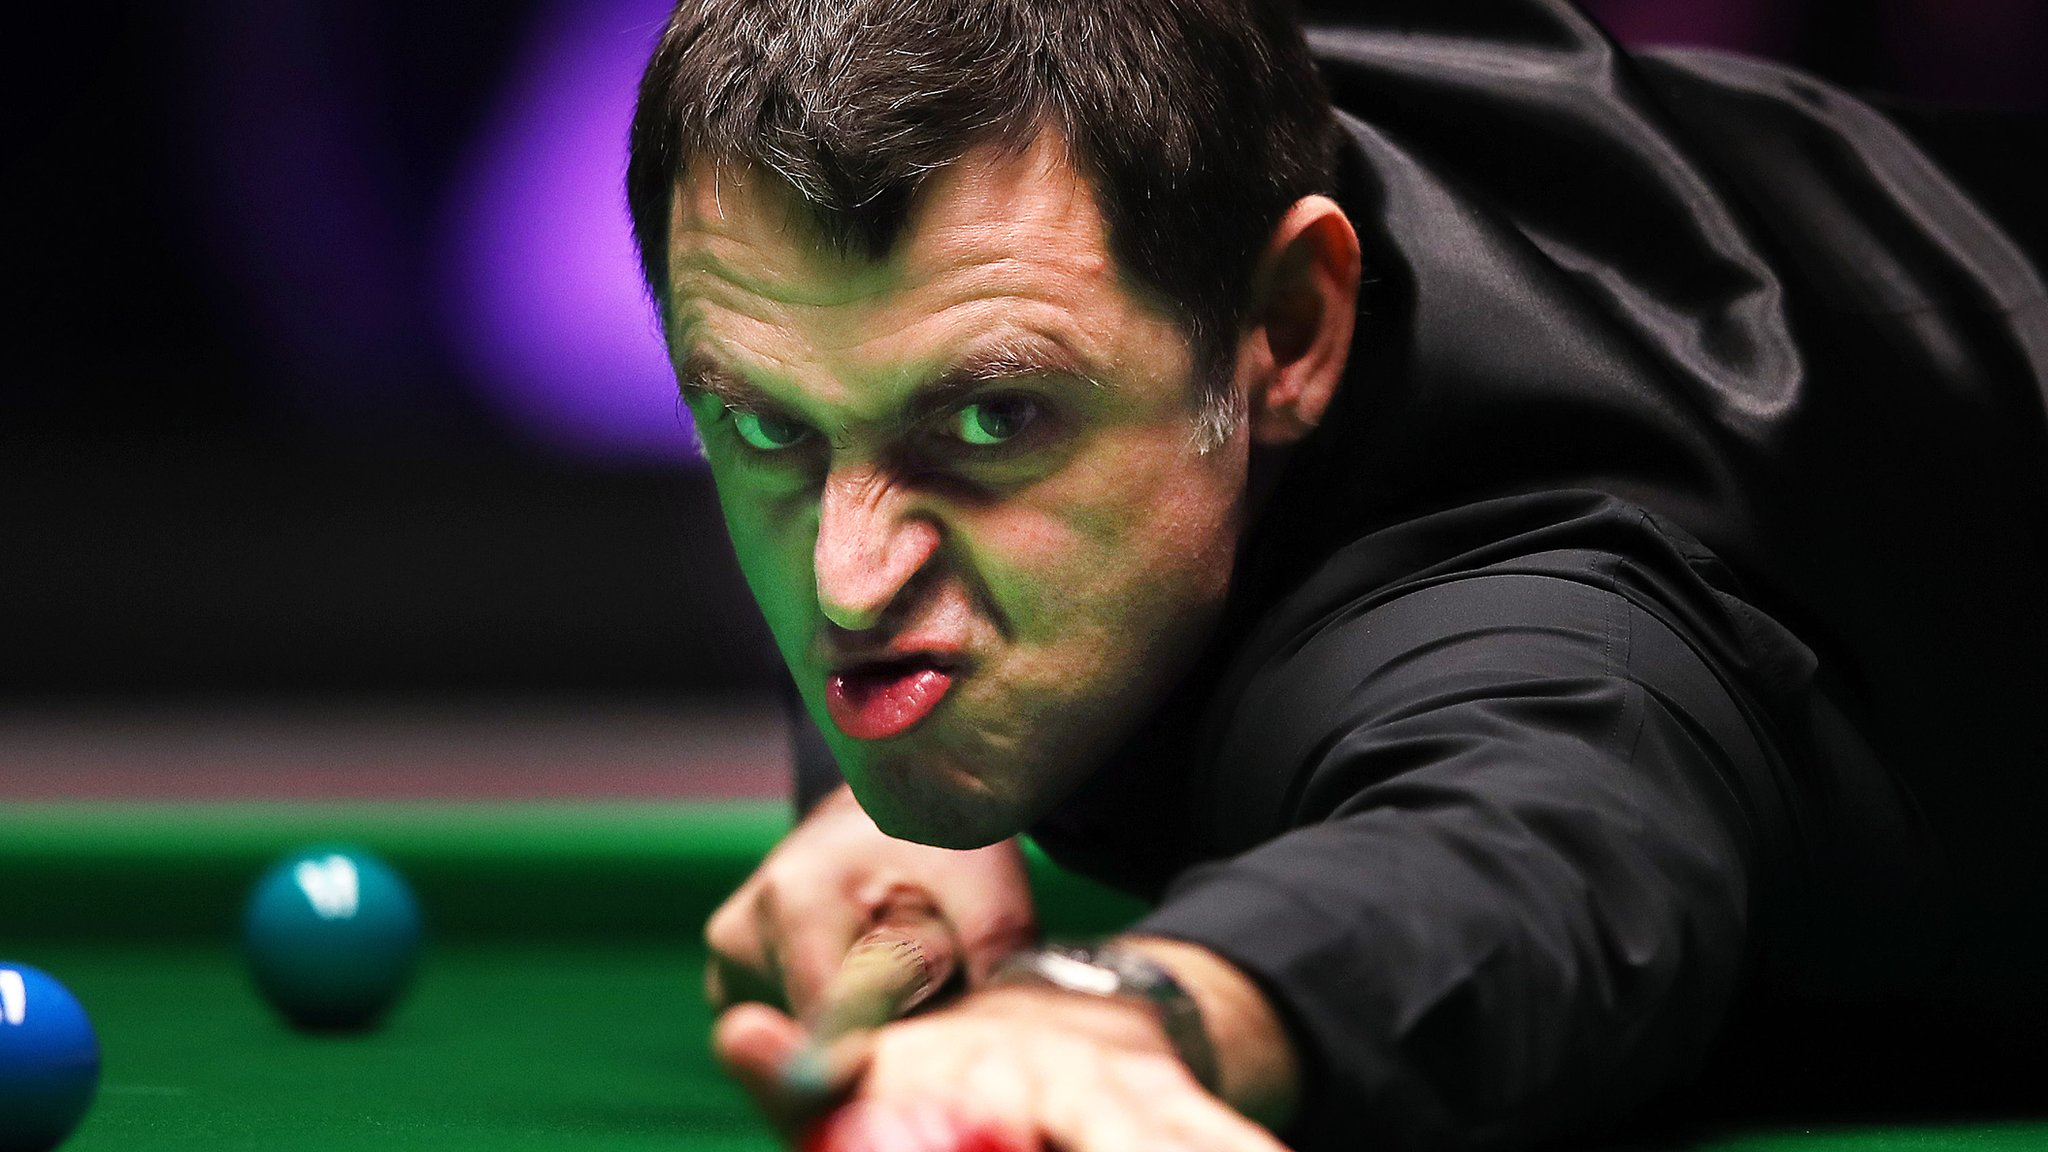 O'Sullivan beats Ding to reach 13th Masters final - videos & report